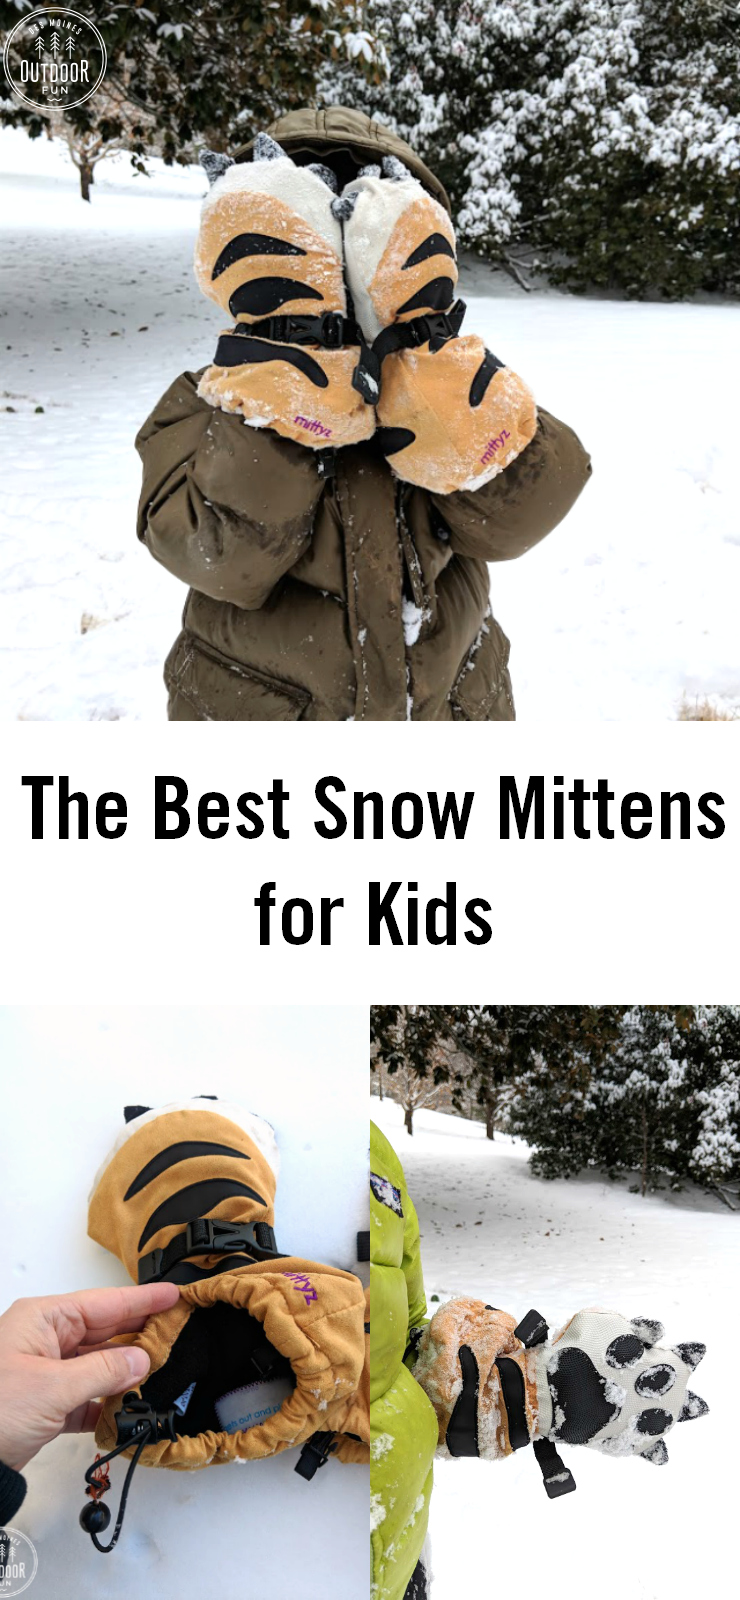 Always wishing you had snow mittens that stay on? Check out these amazing, super warm mittens. Not a sponsored post - we have used them for the past year and loved these! The best snow mittens for kids - review of Mittyz from Veyo Kids. #outdoorkids #kidsmittens #wintergear